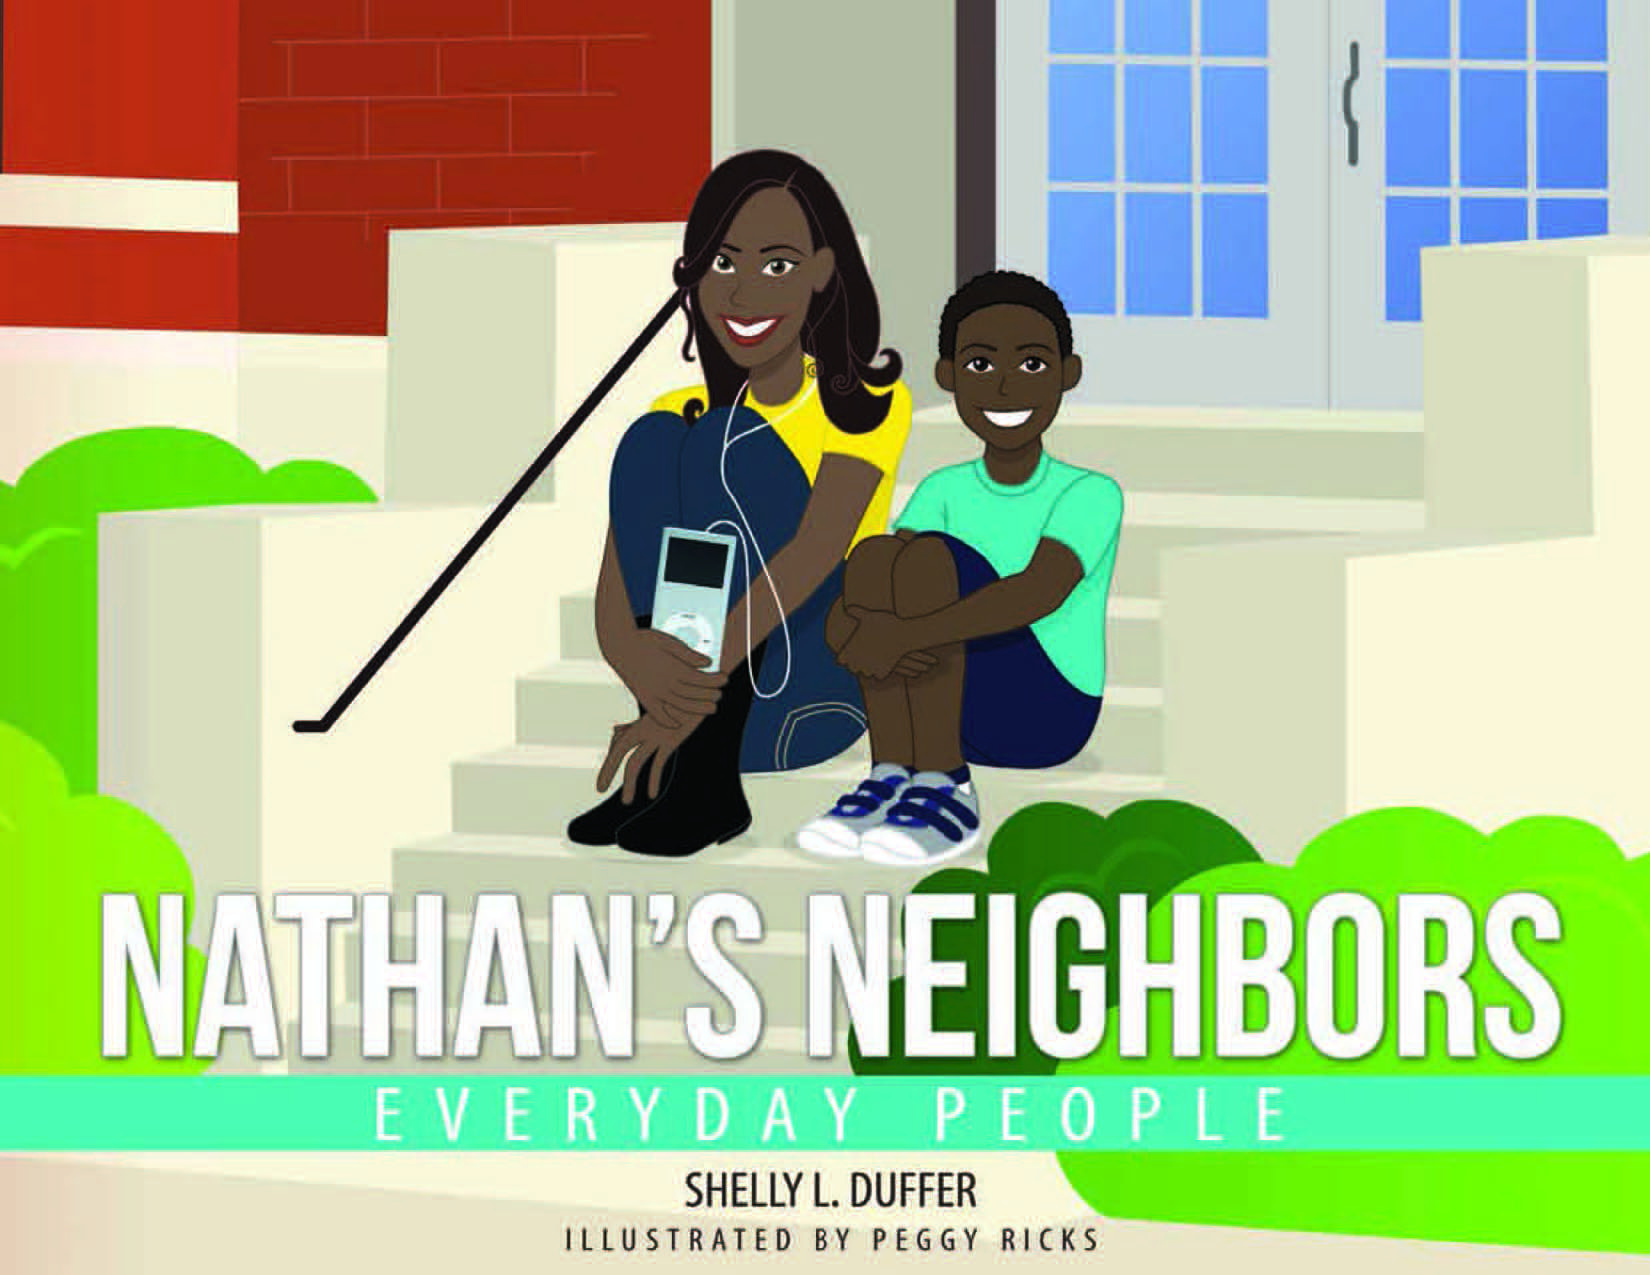 NATHAN'S NEIGHBORS